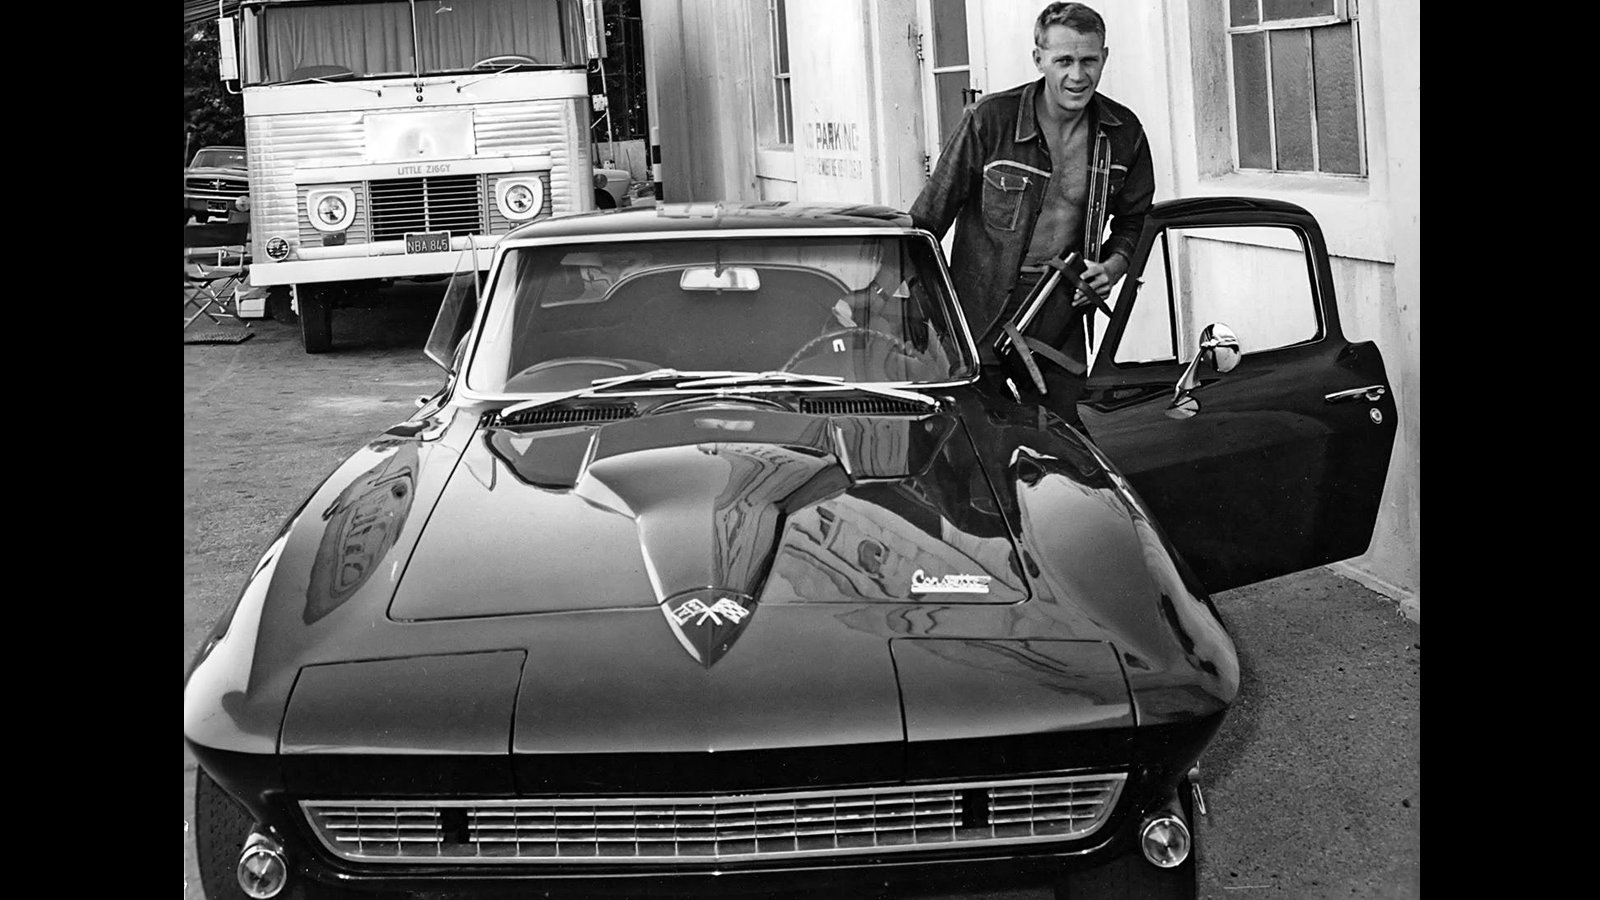 Corvette in black and white